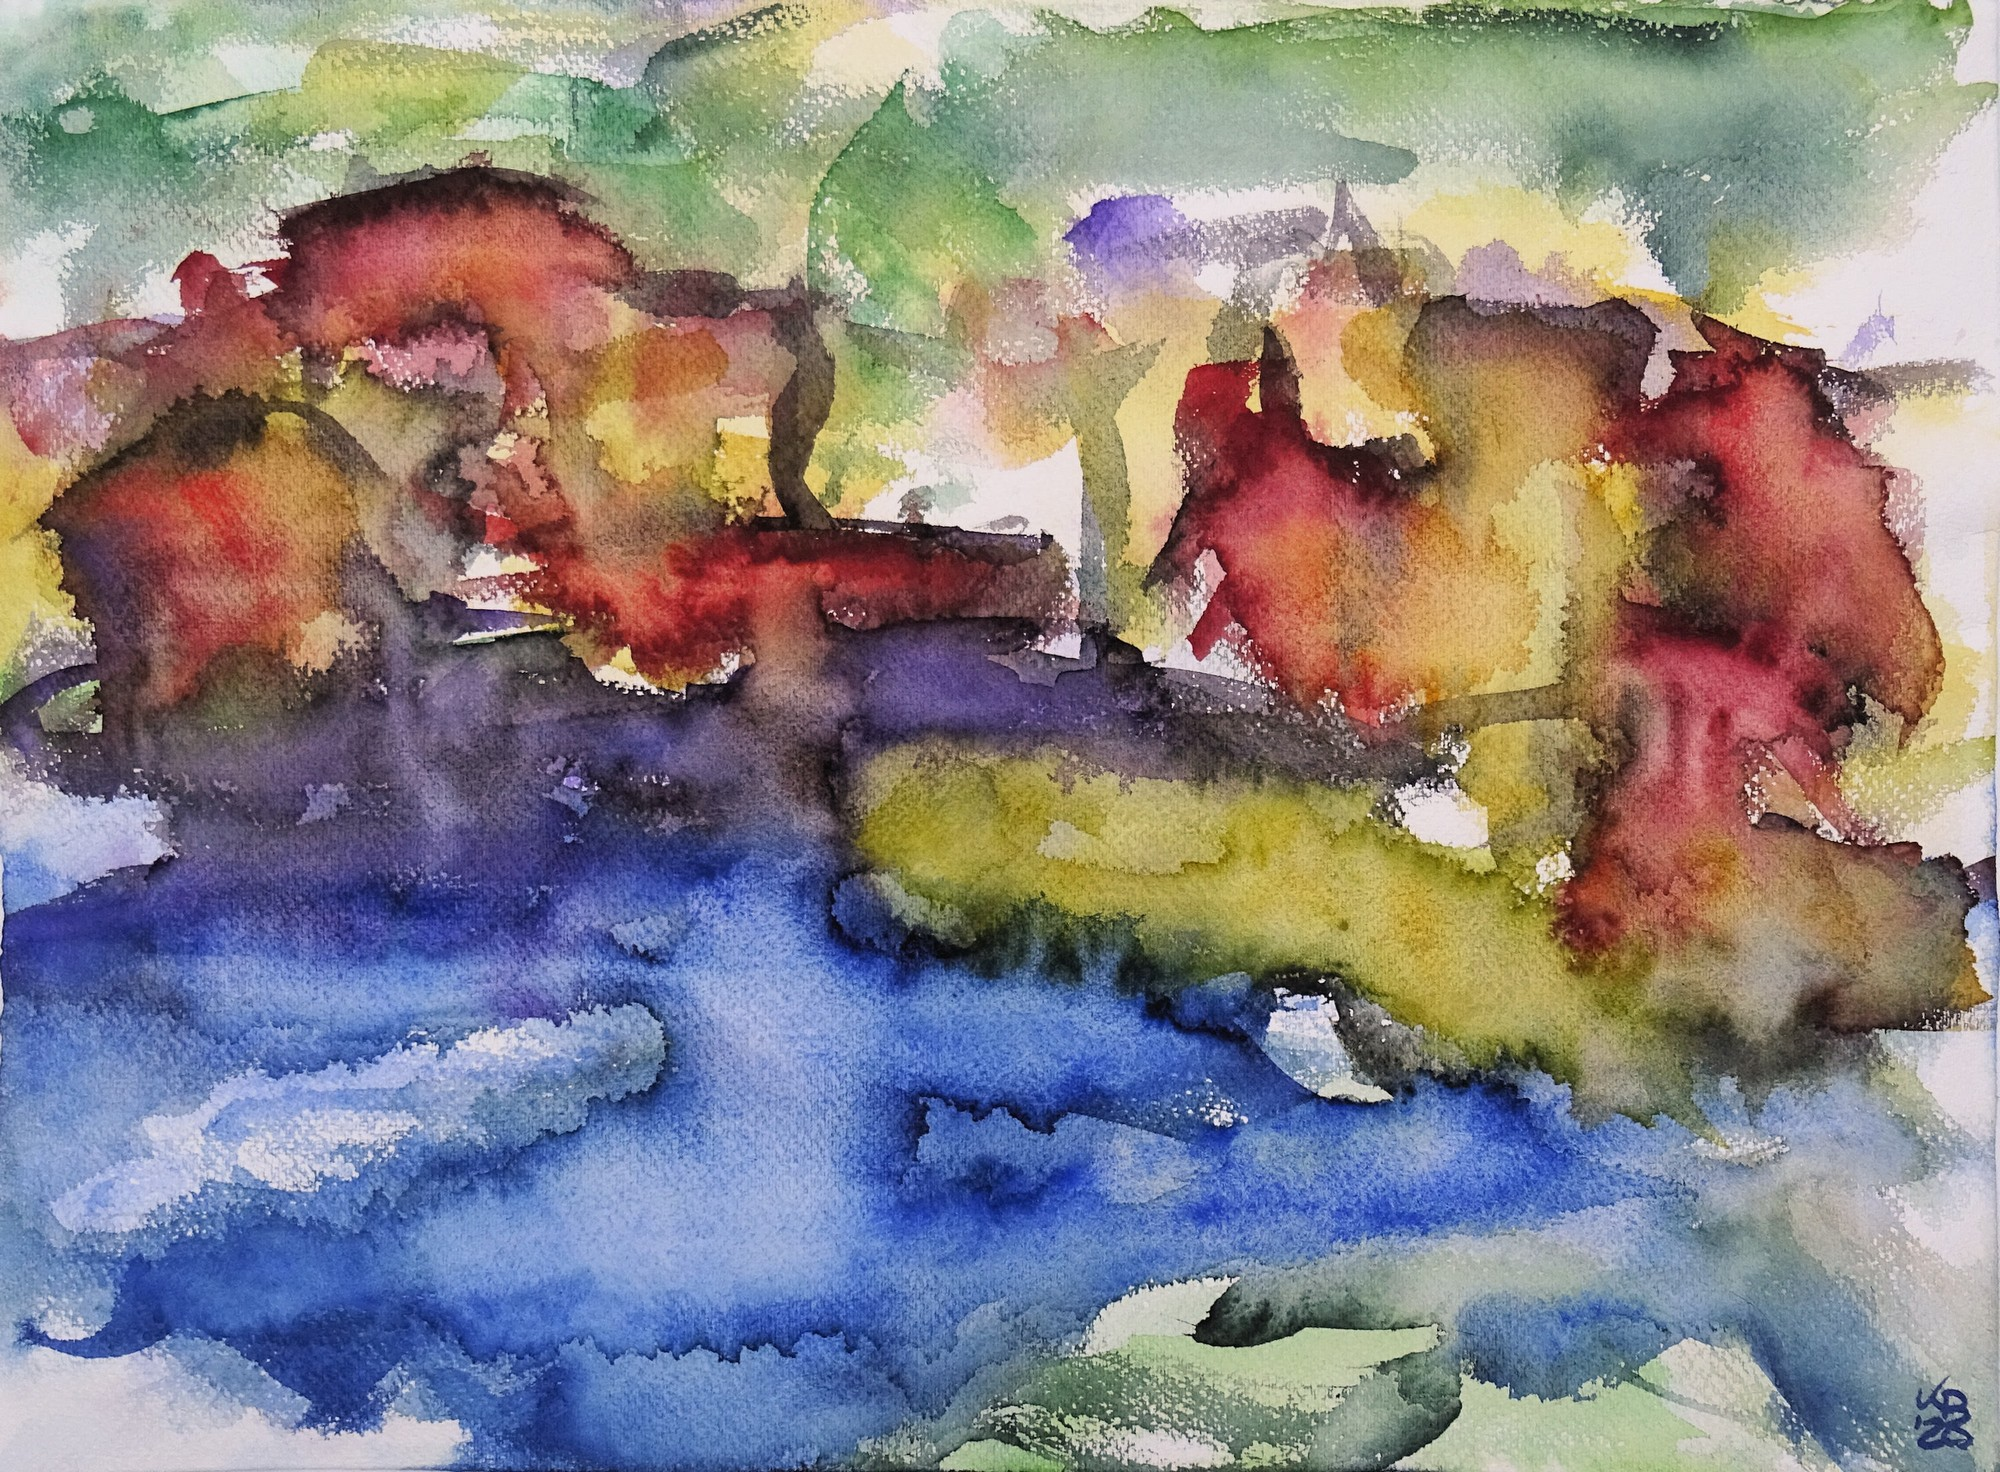 Port Isaac I, Watercolour 53 x 39 cm, © 2020 by Klaus Bölling